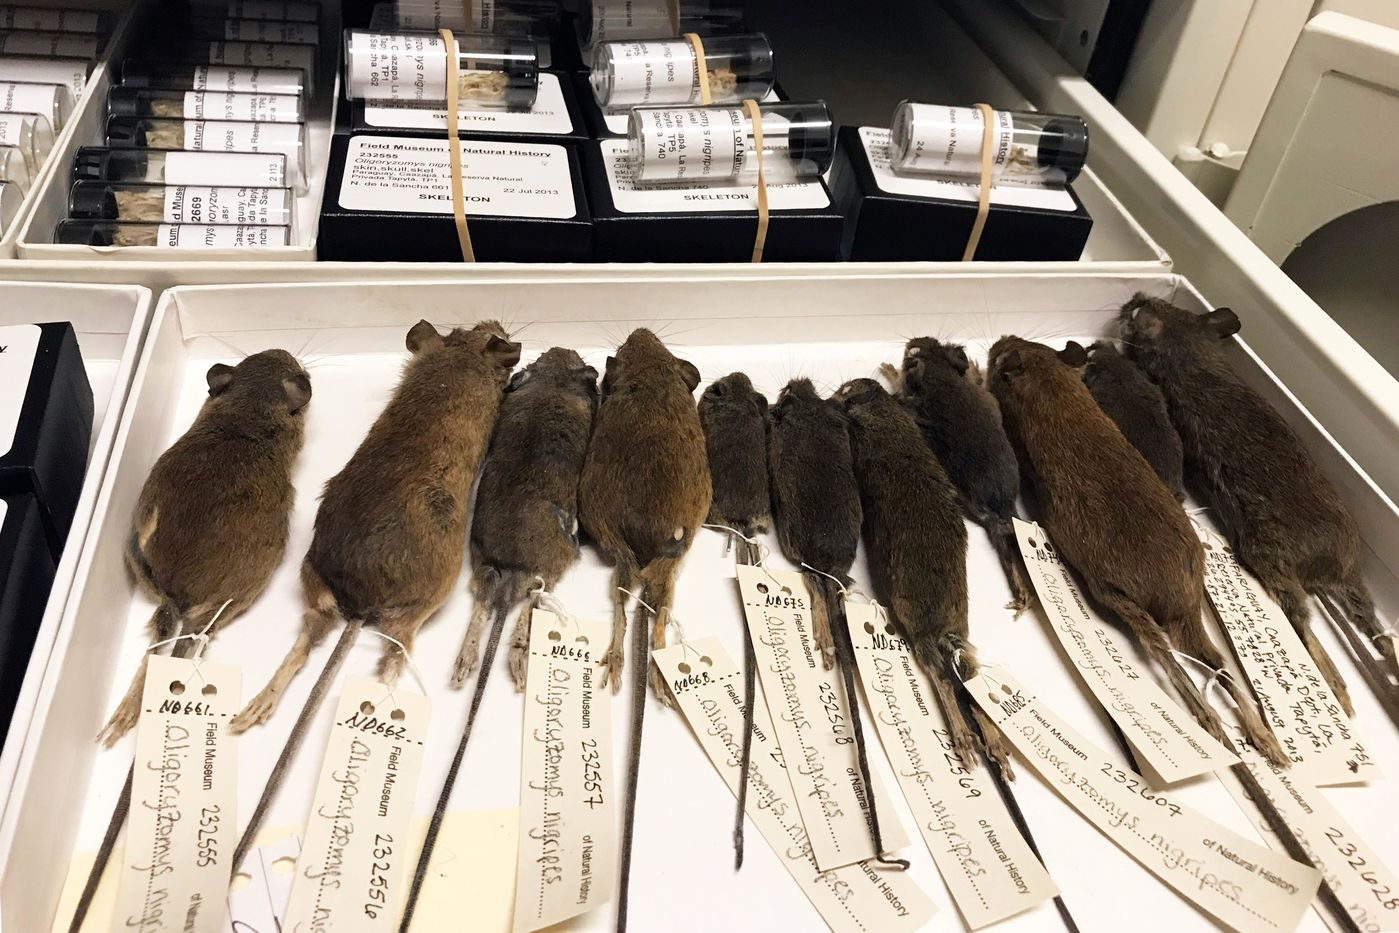 Several mouse specimens are lined up in a white box, with their tails and specimen tags pointing towards the viewer. Small glass vials are seen in a box behind them.